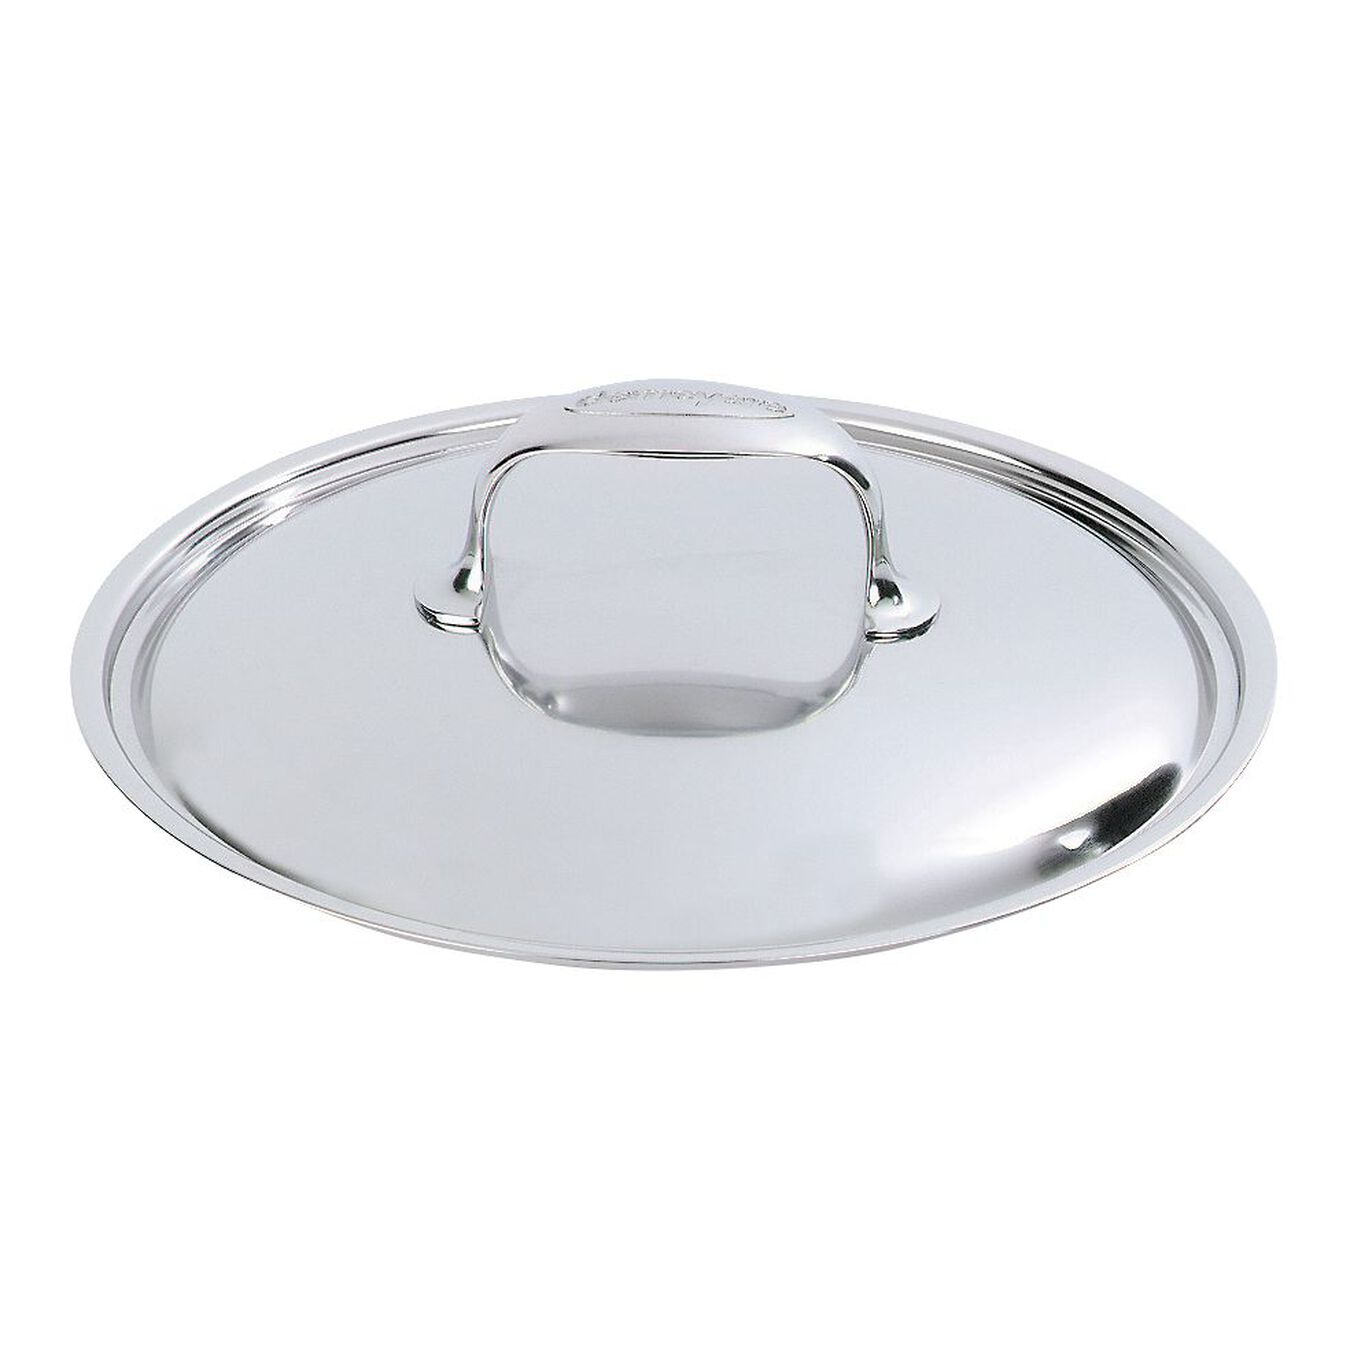 Couvercle, Rond(e) | Inox 18/10,,large 1